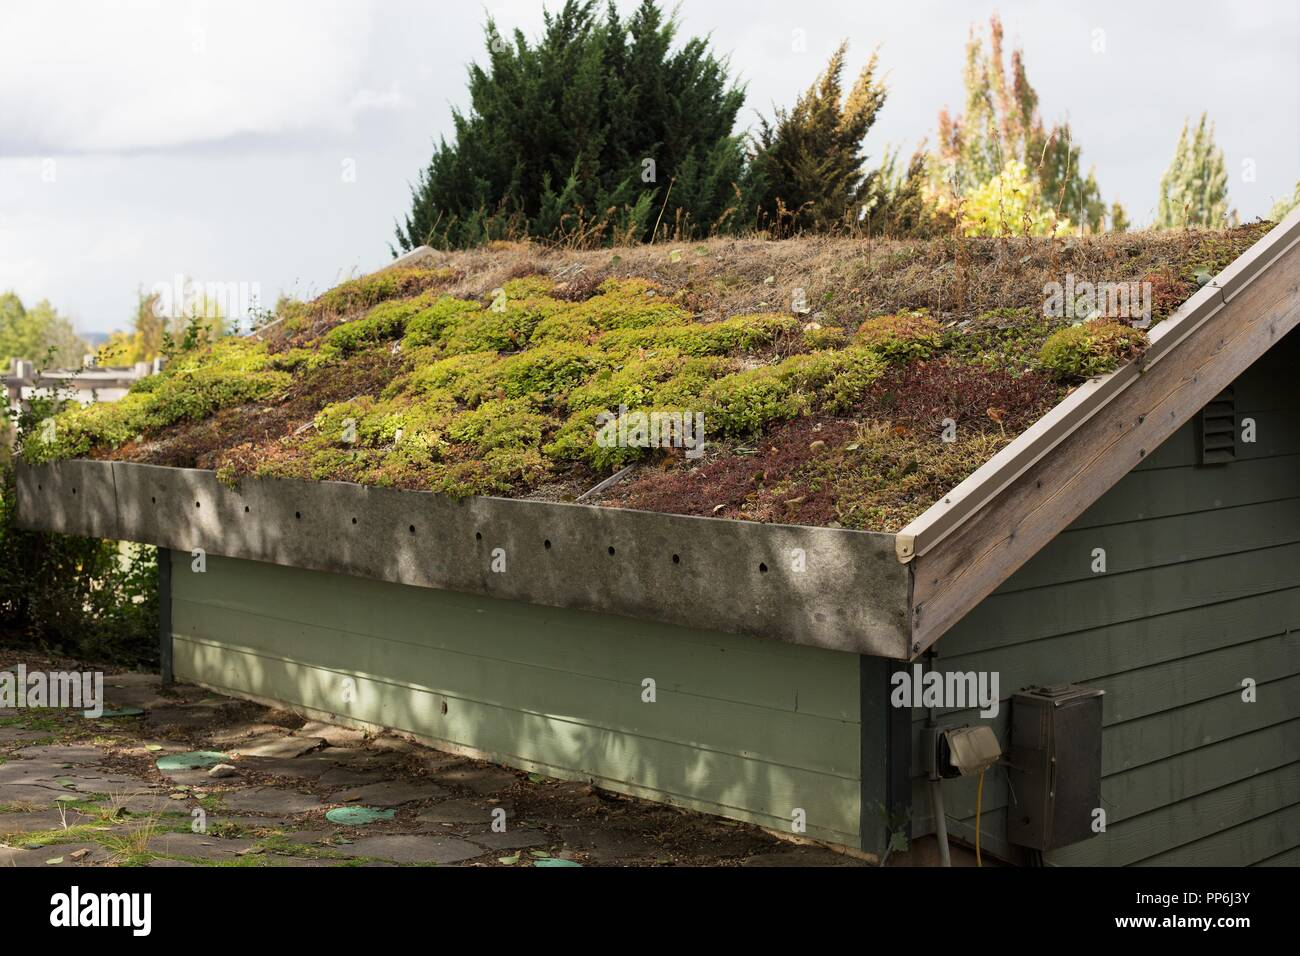 A building with an eco-roof, at the Oregon Garden in Silverton ...